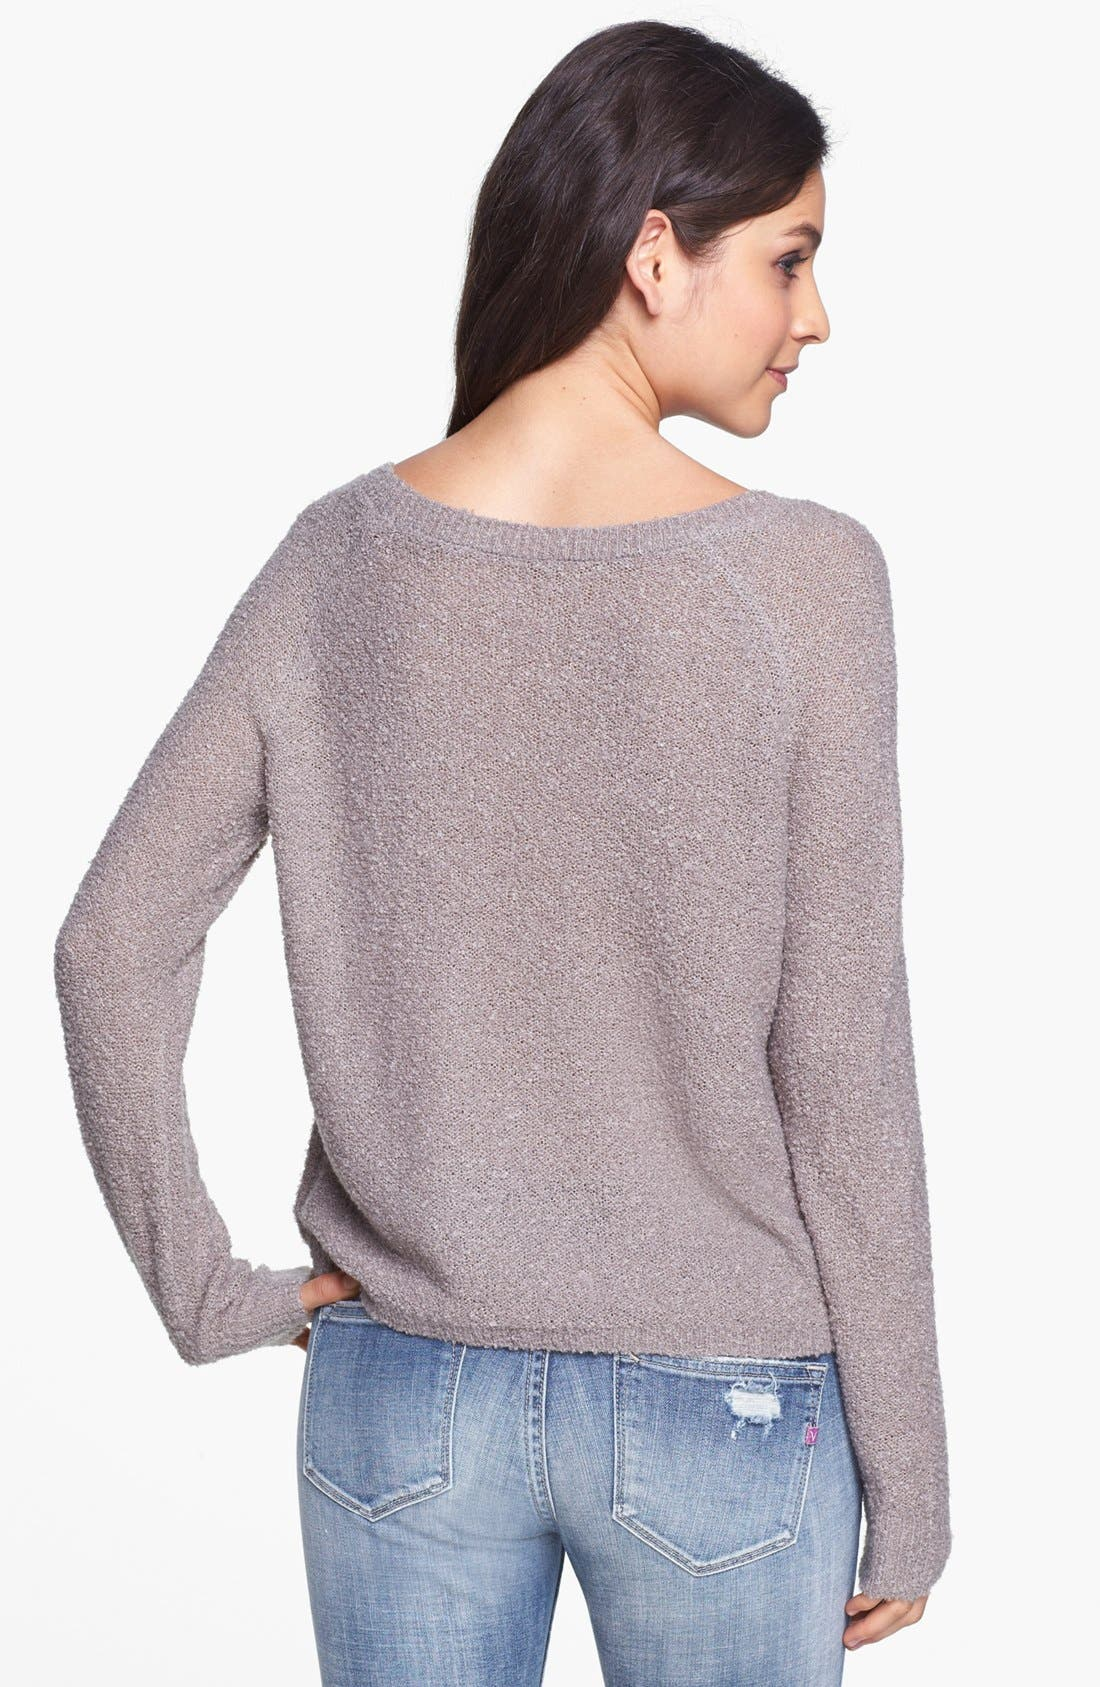 'Grunge' Textured Sweater,                             Alternate thumbnail 14, color,